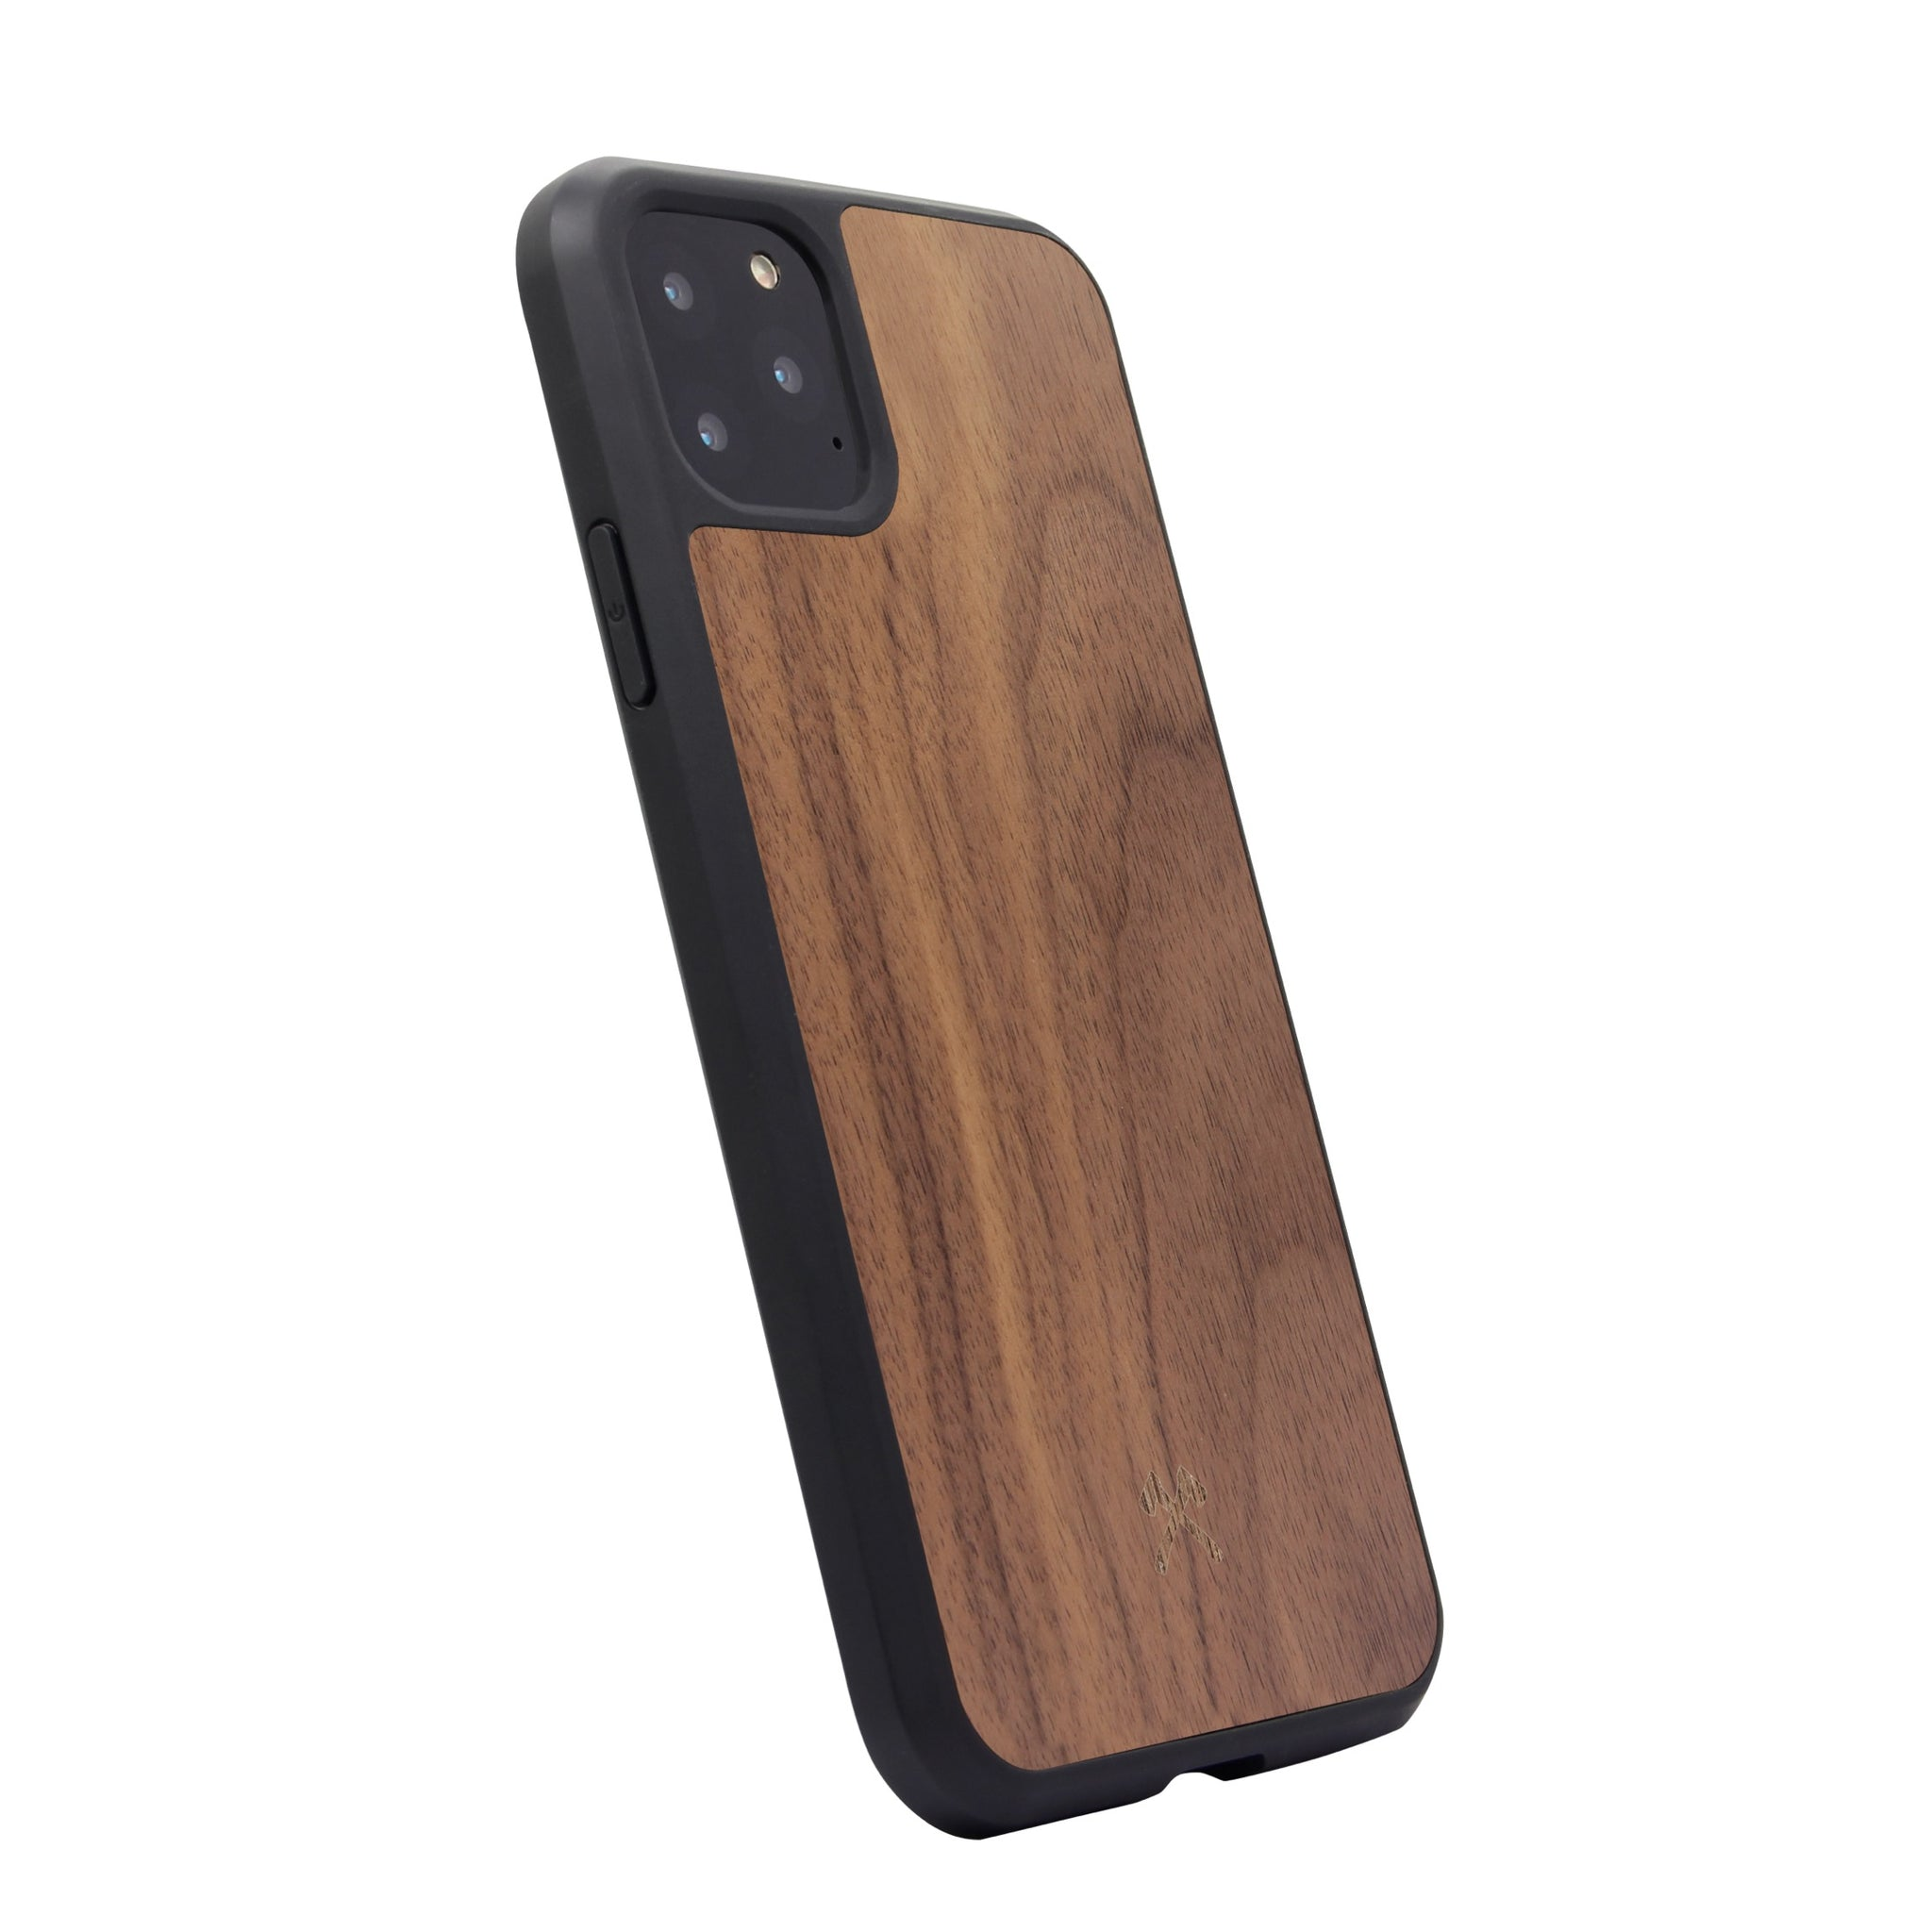 Woodcessories EcoCase Bumper for iPhone 11 - Walnut